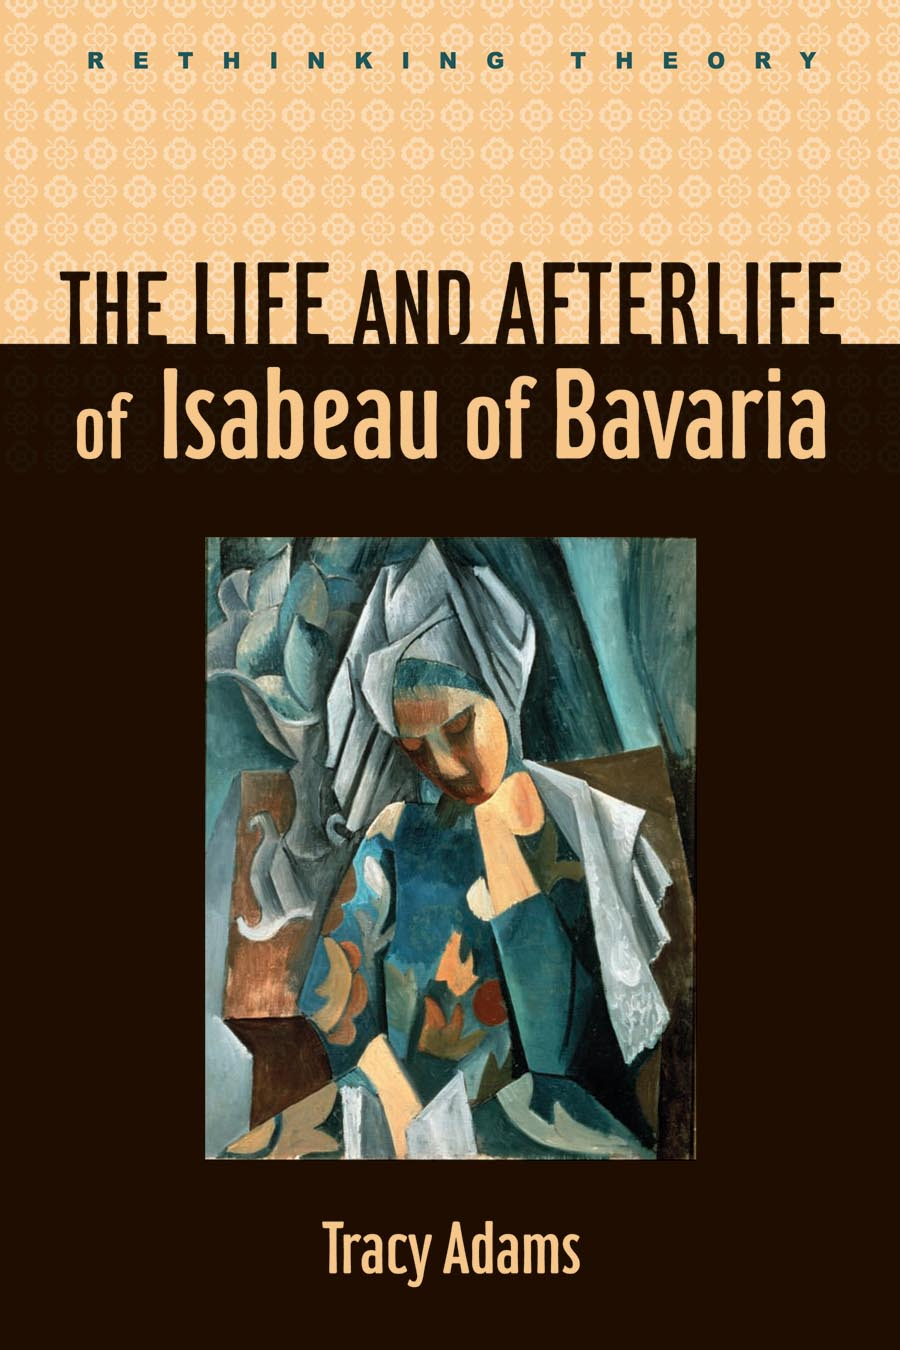 The Life and Afterlife of Isabeau of Bavaria l pastan an early afterlife – poems